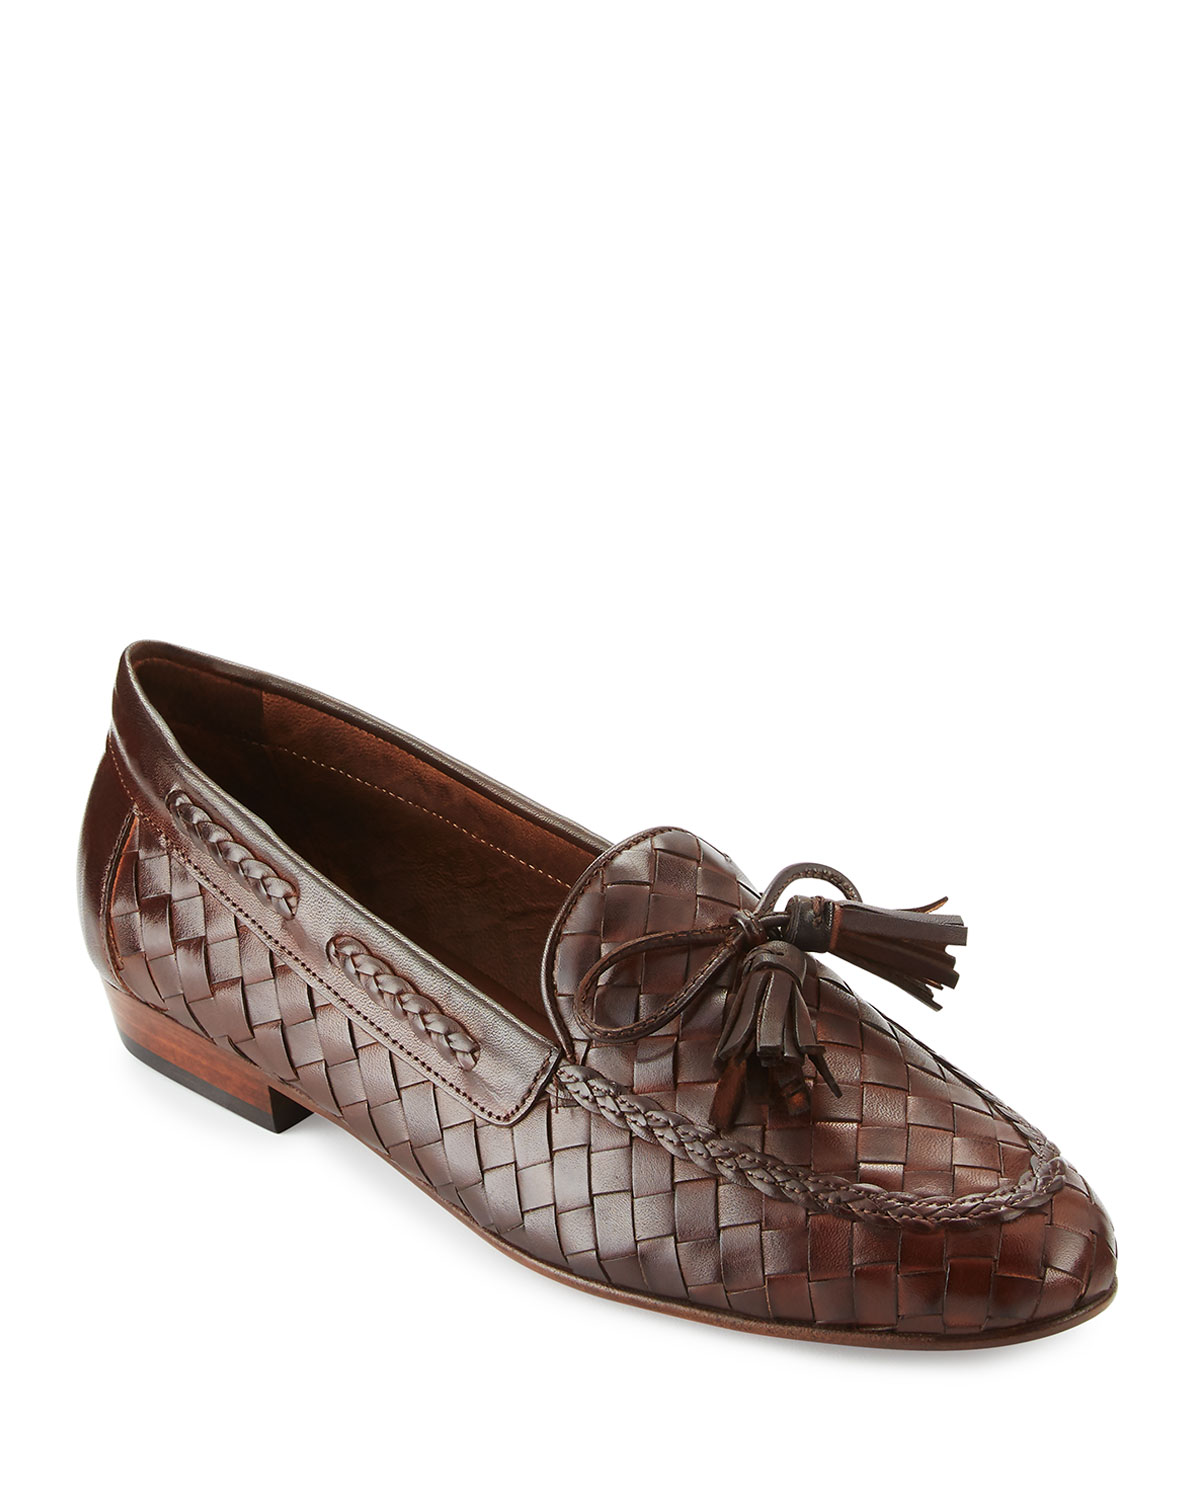 Sesto Meucci NICOLE WOVEN LEATHER LOAFER, DARK TAN